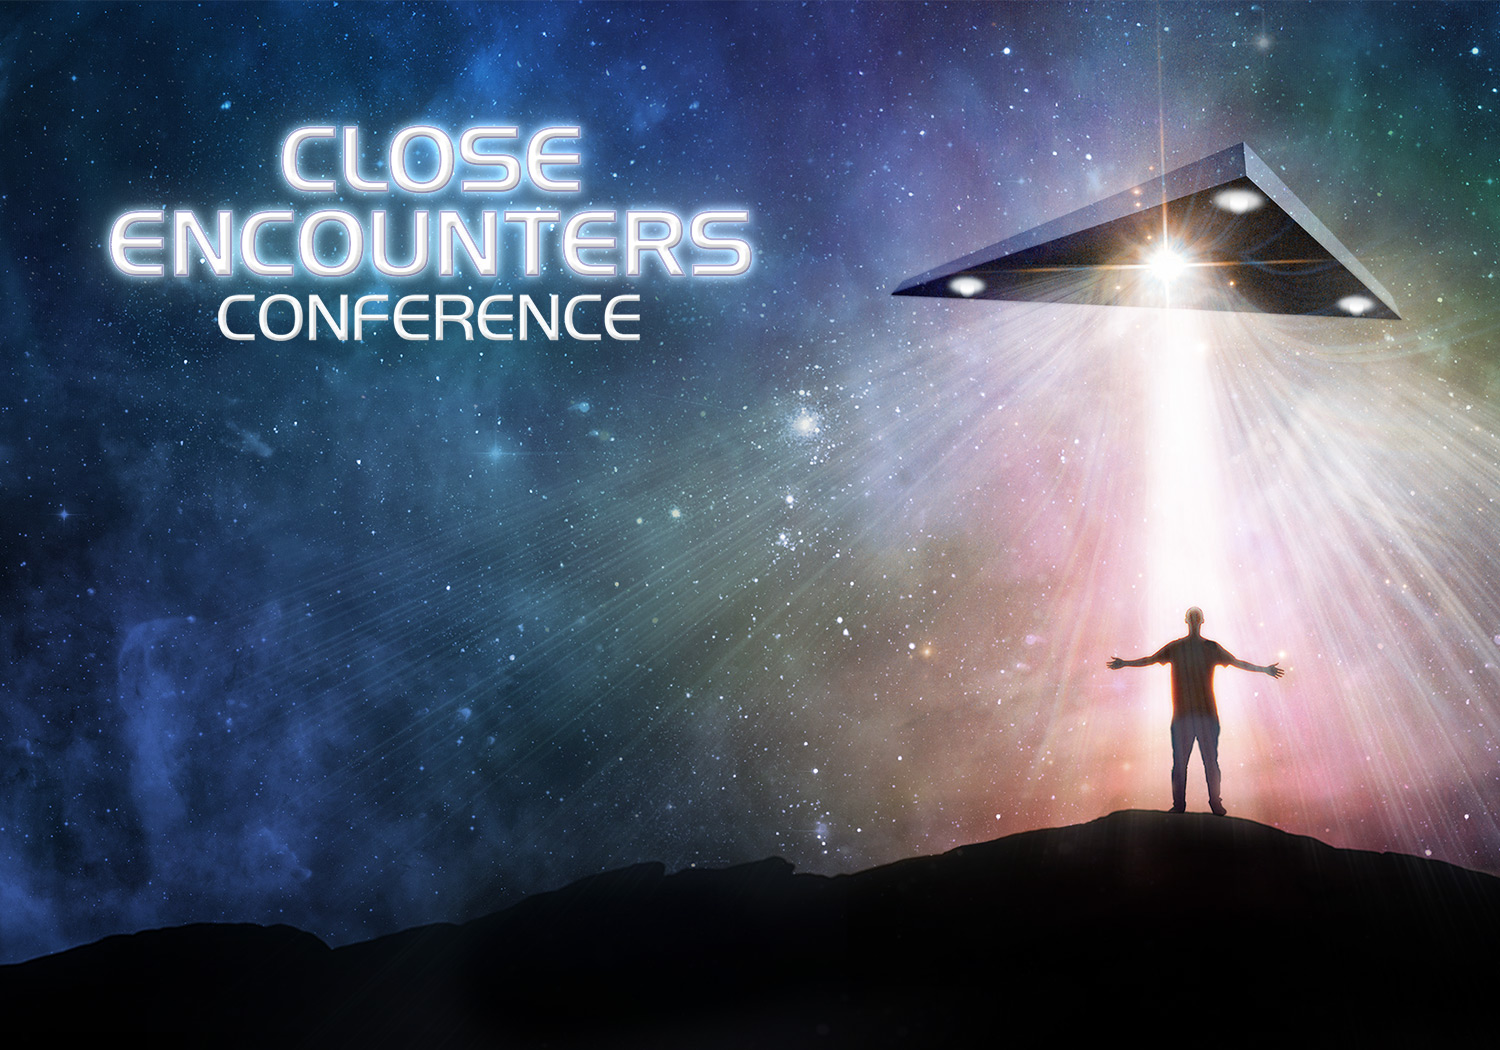 Close Encounters Conference